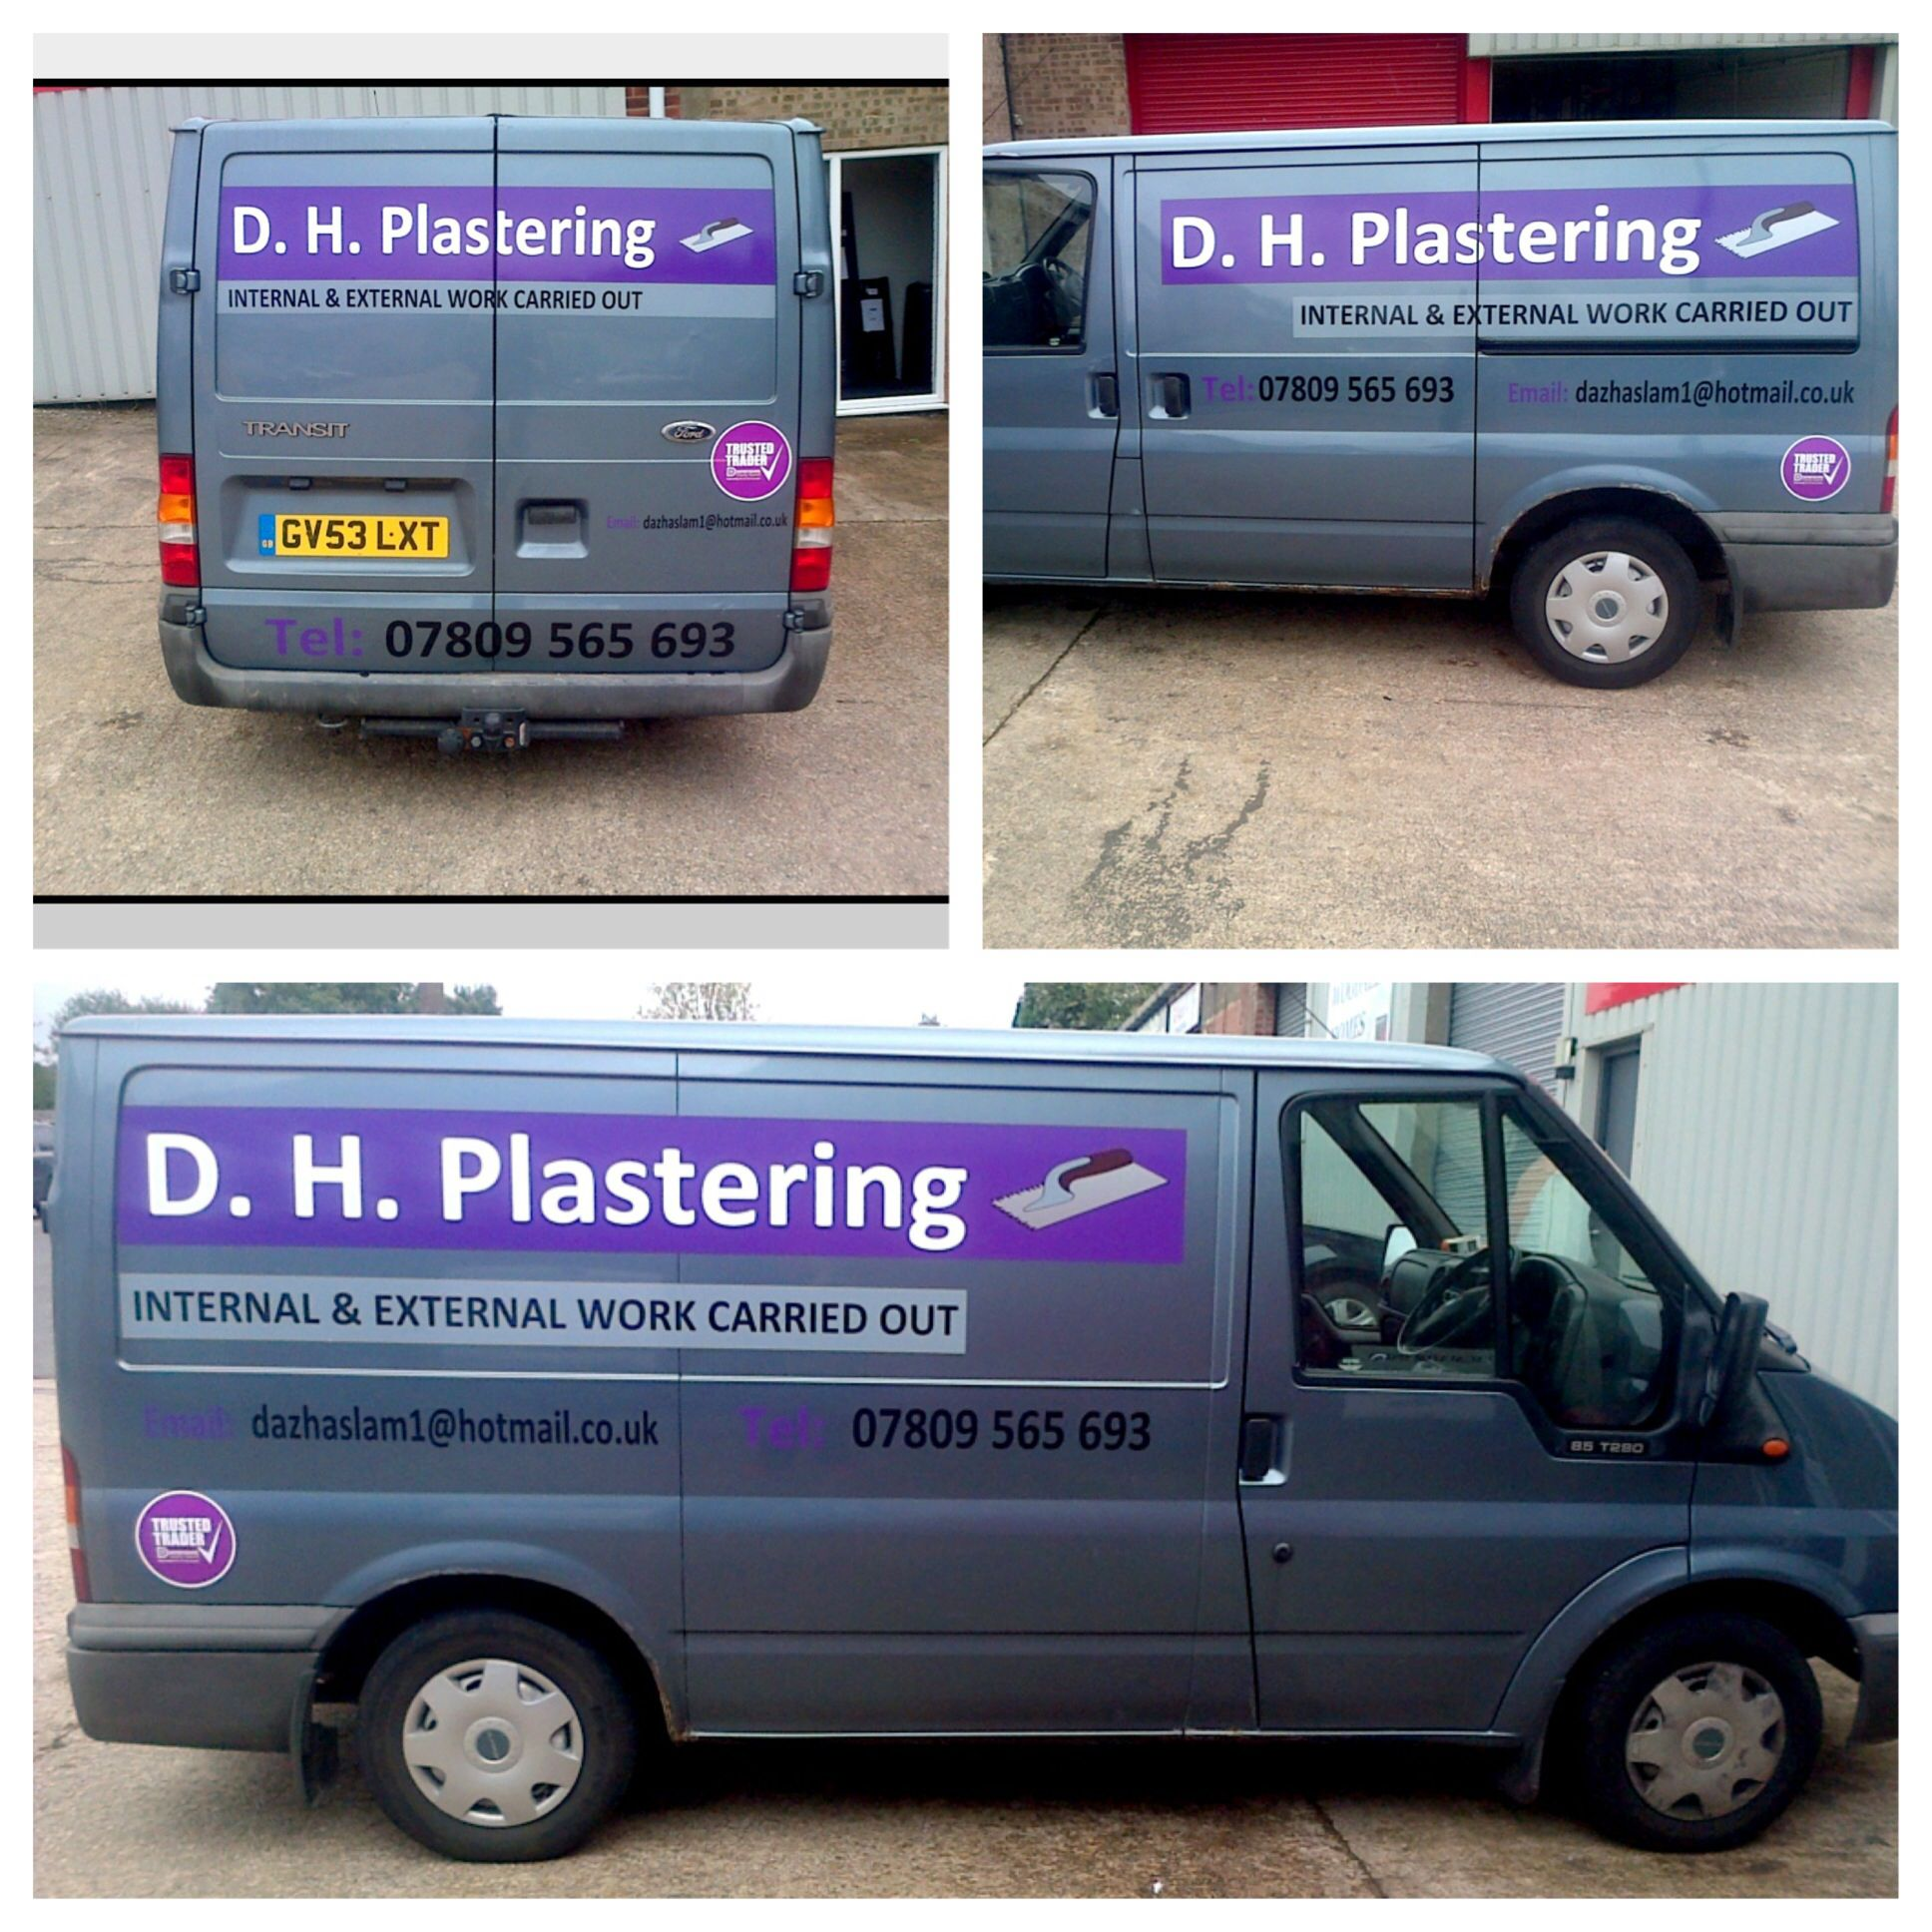 D h plastering ford transit vehicle van graphics for local chesterfield plastering company